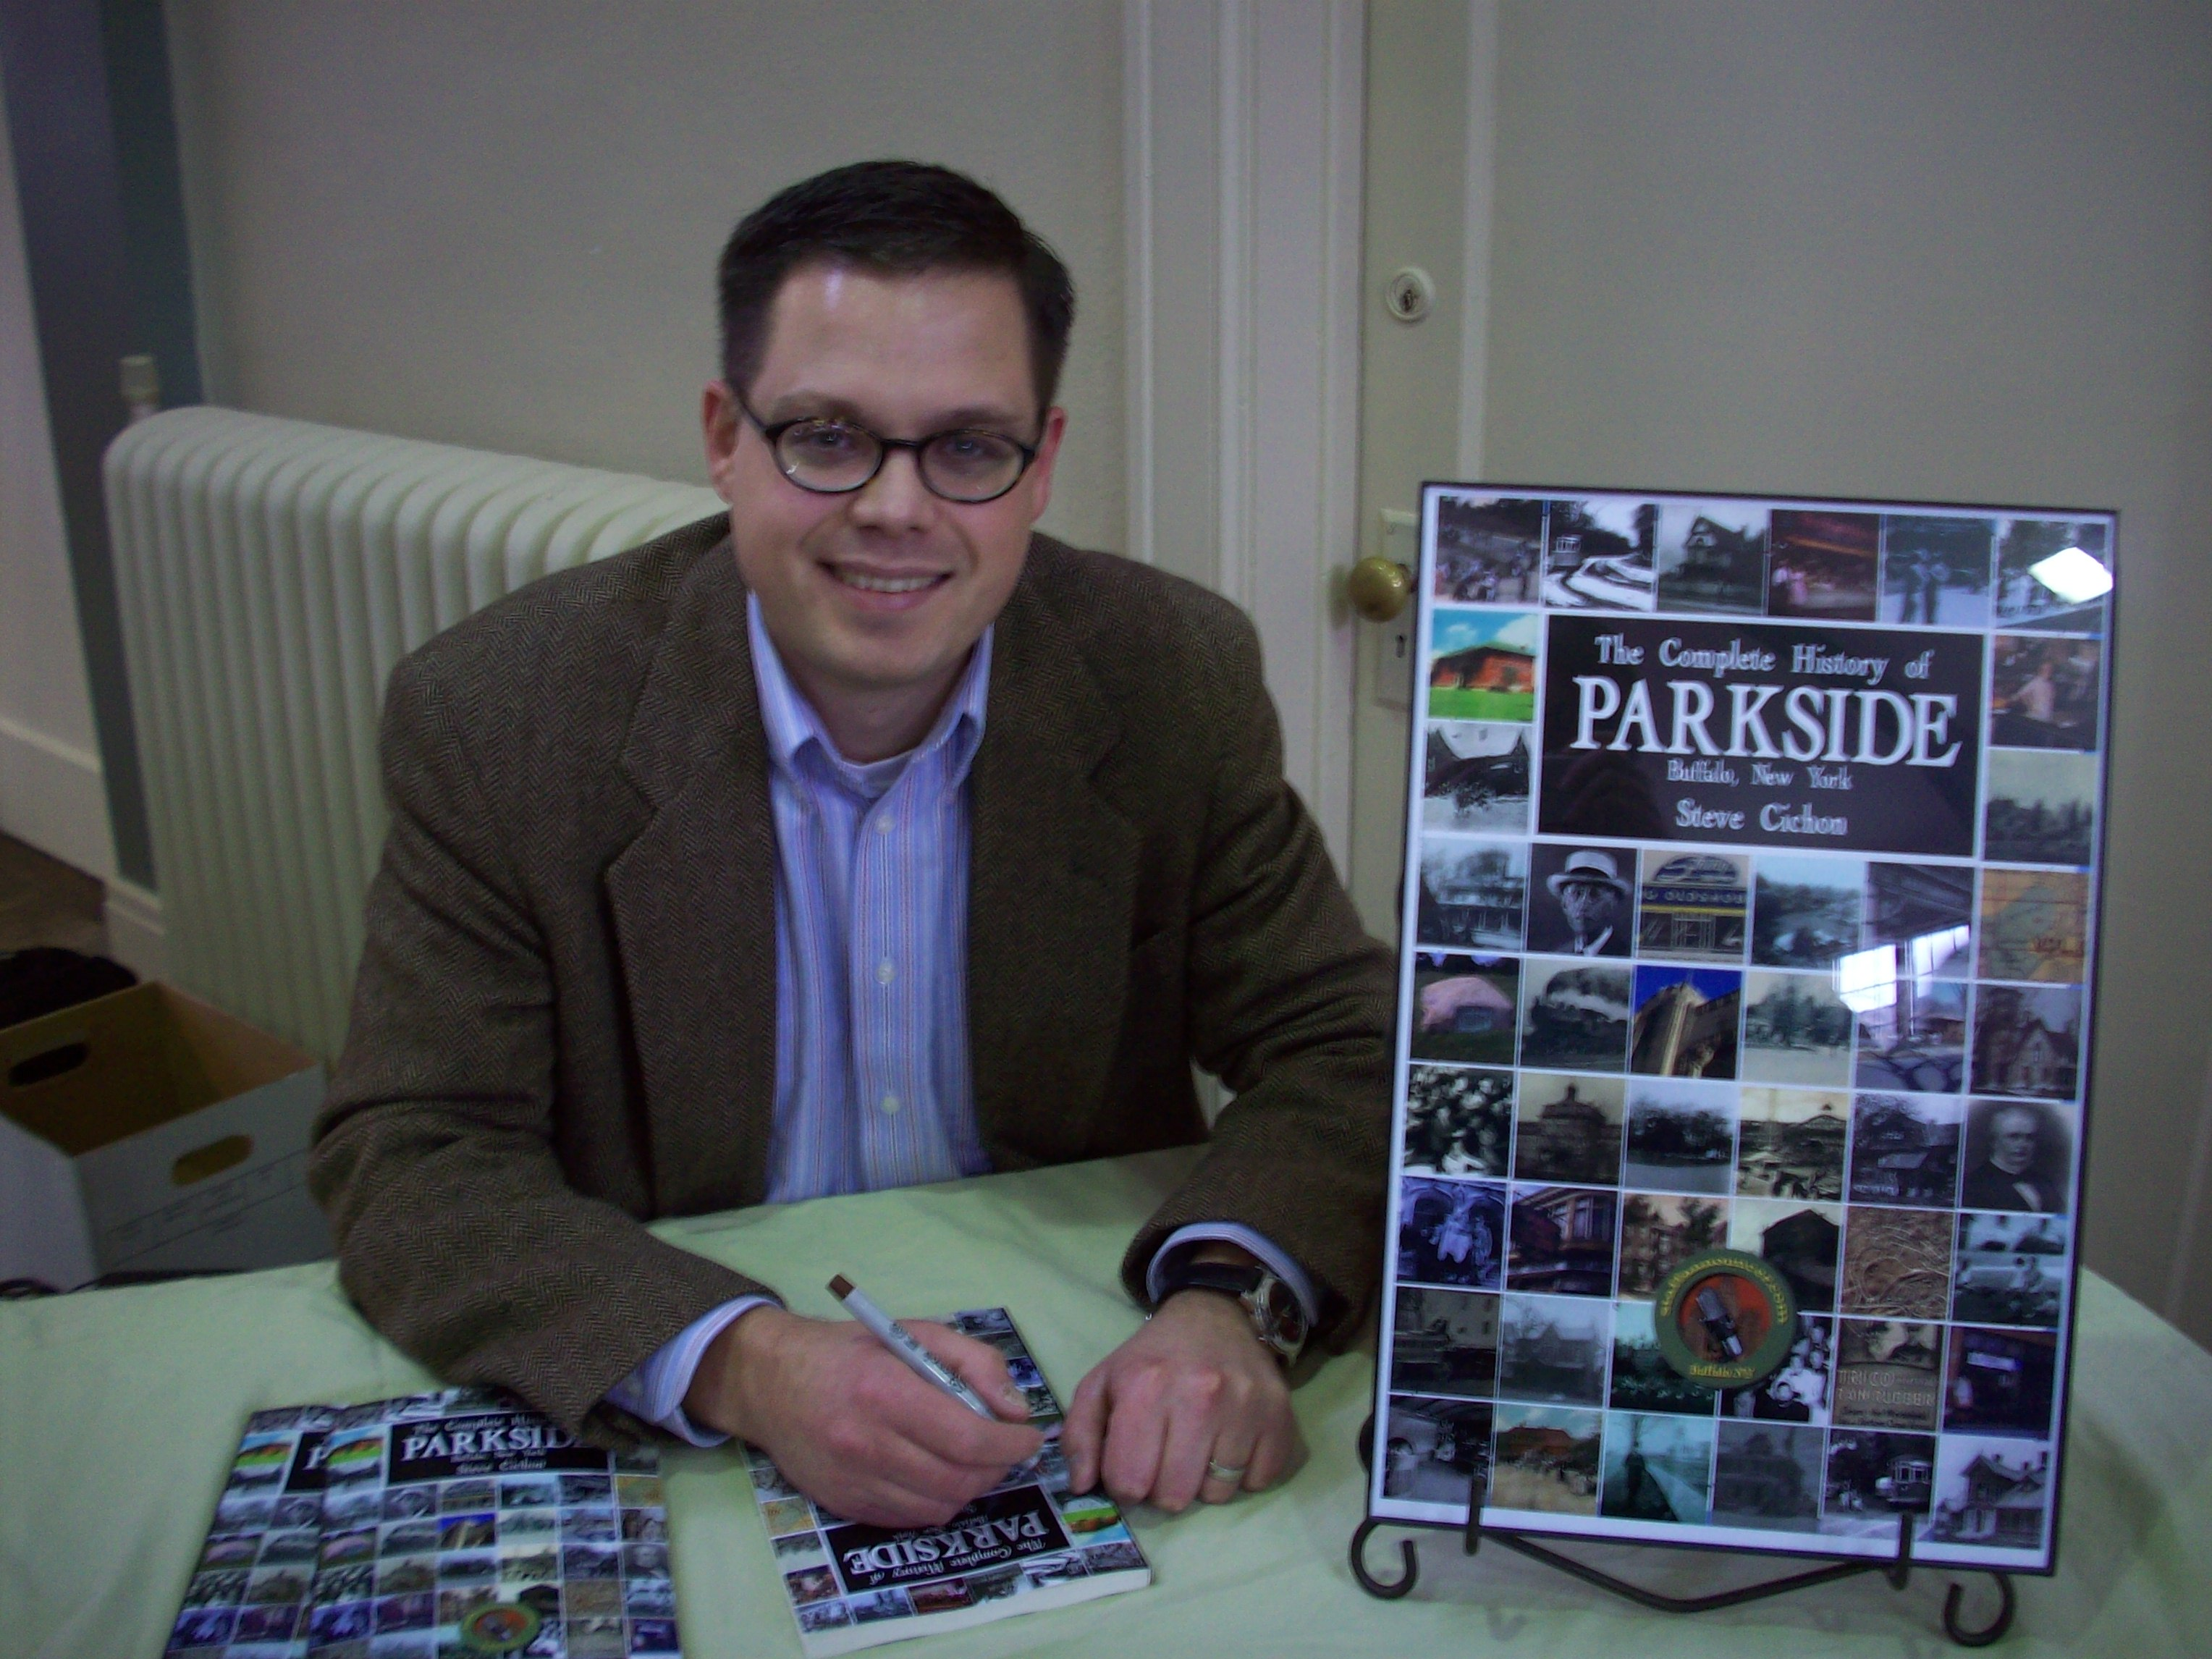 Steve signing The Complete History of Parkside